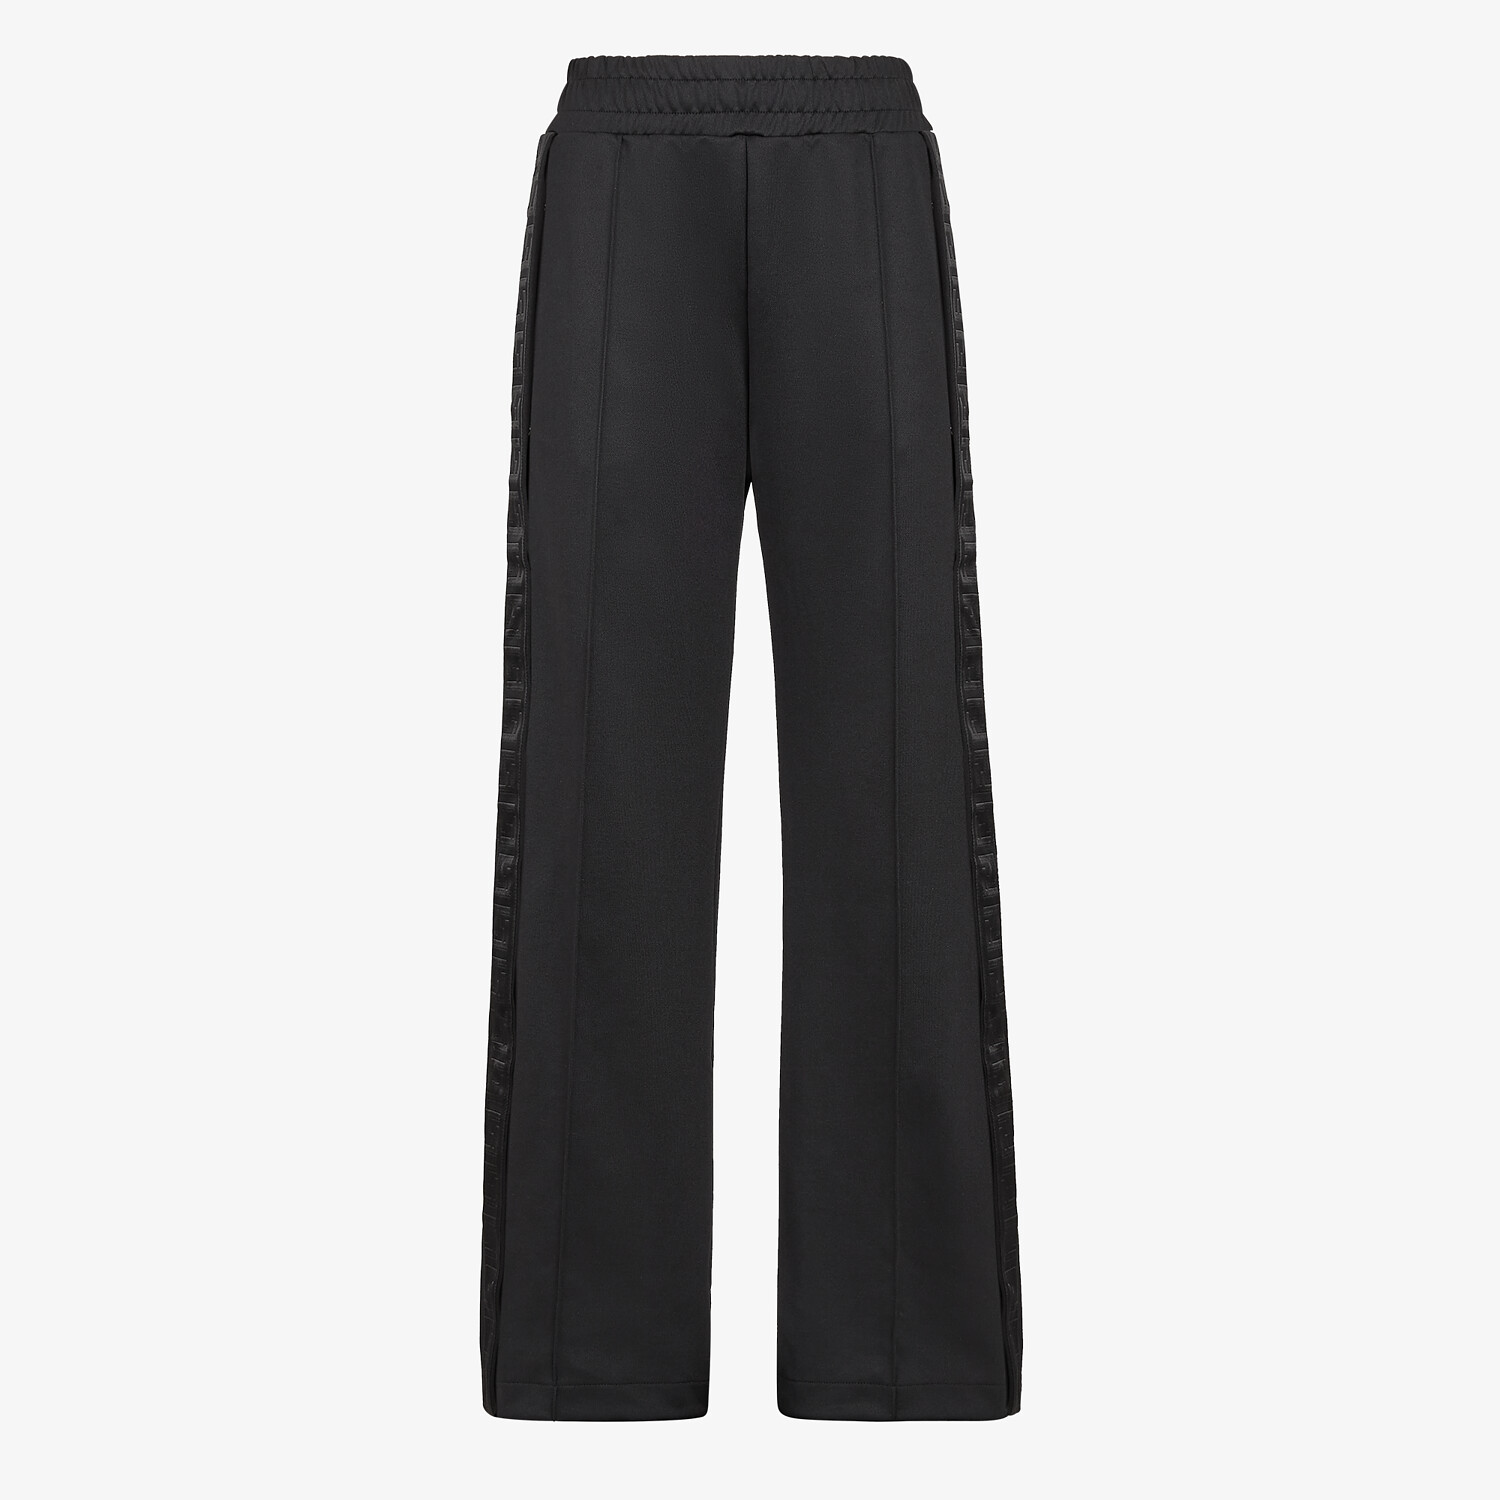 FENDI PANTS - Black piqué jersey pants - view 1 detail